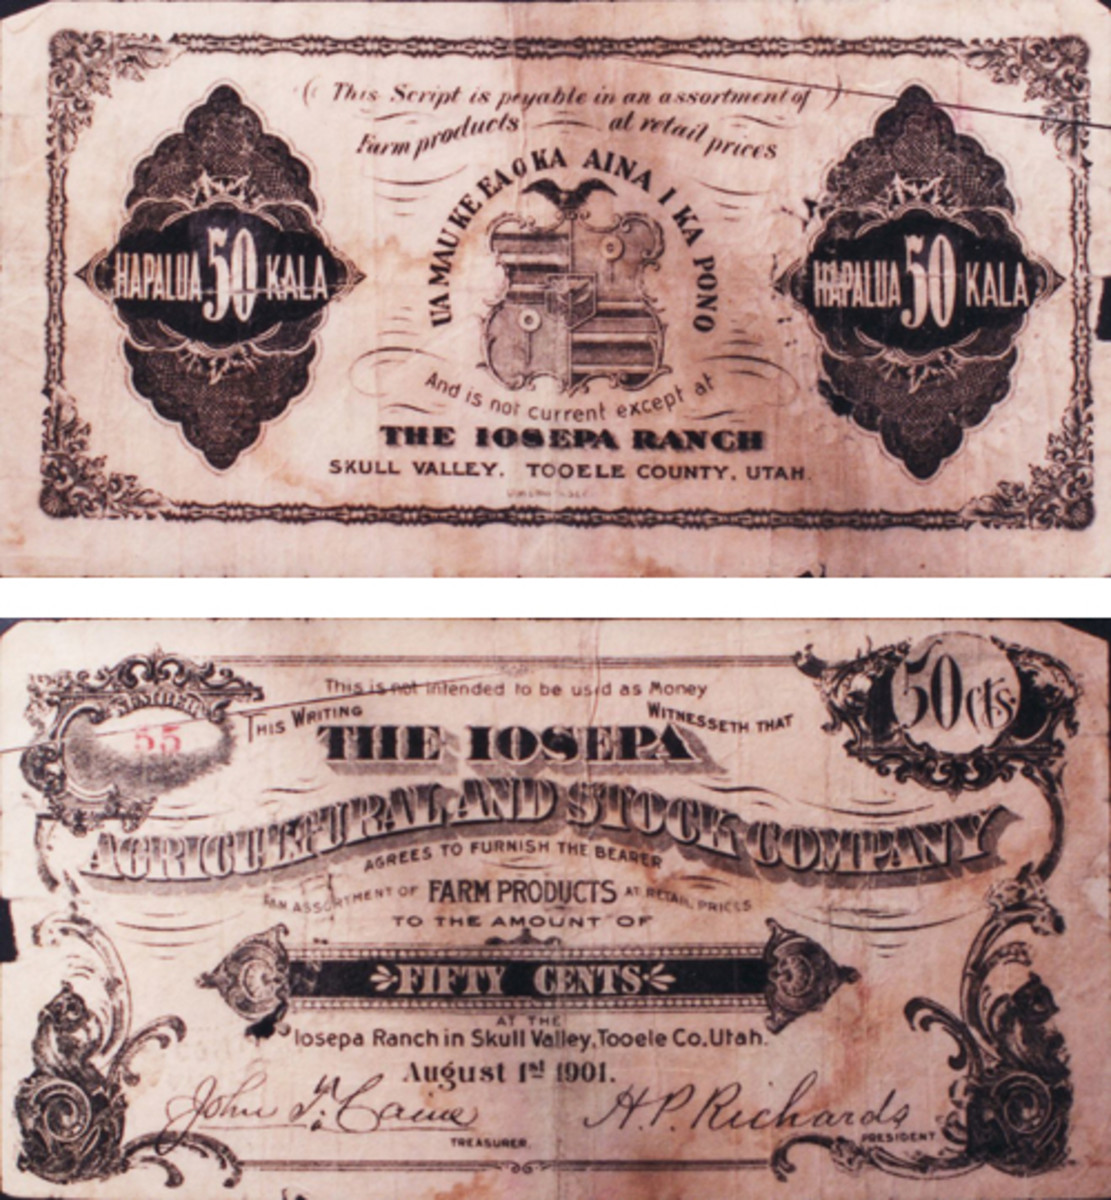 The face and back of a scrip issue of the Iosepa Agricultural and Stock Company.